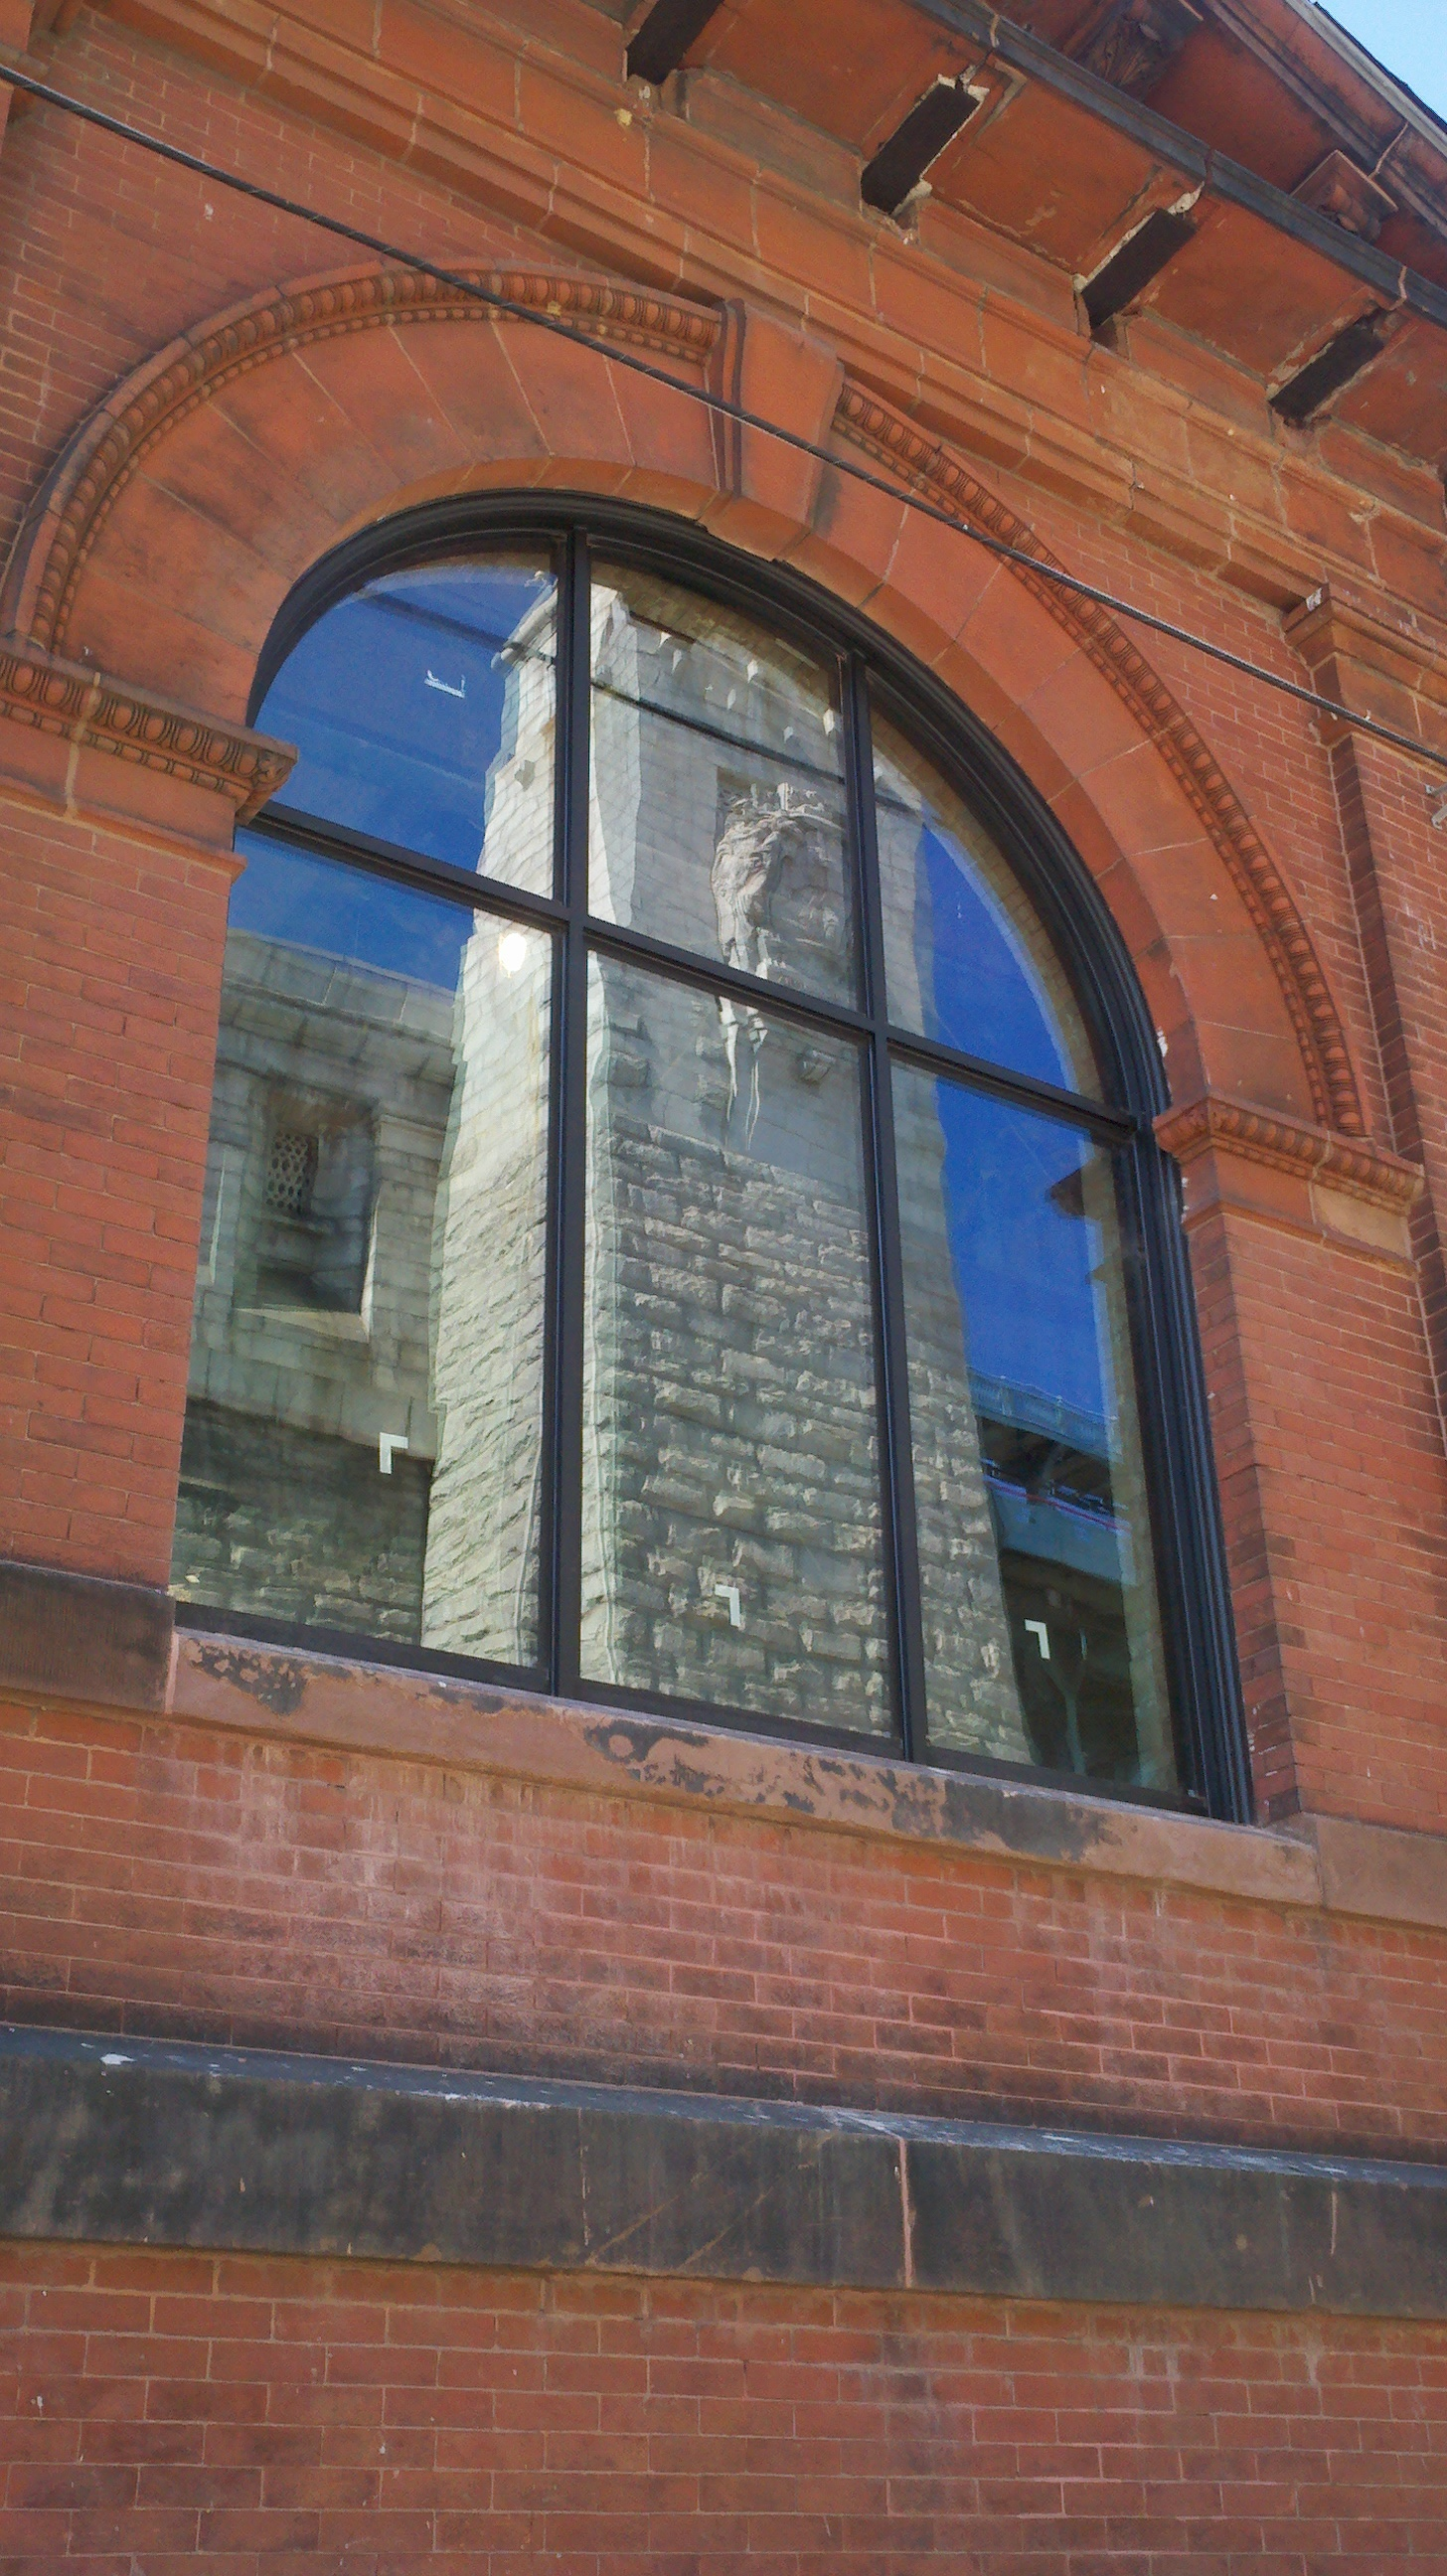 A tower of the Ben Franklin Bridge is reflected in a new FringeArts window